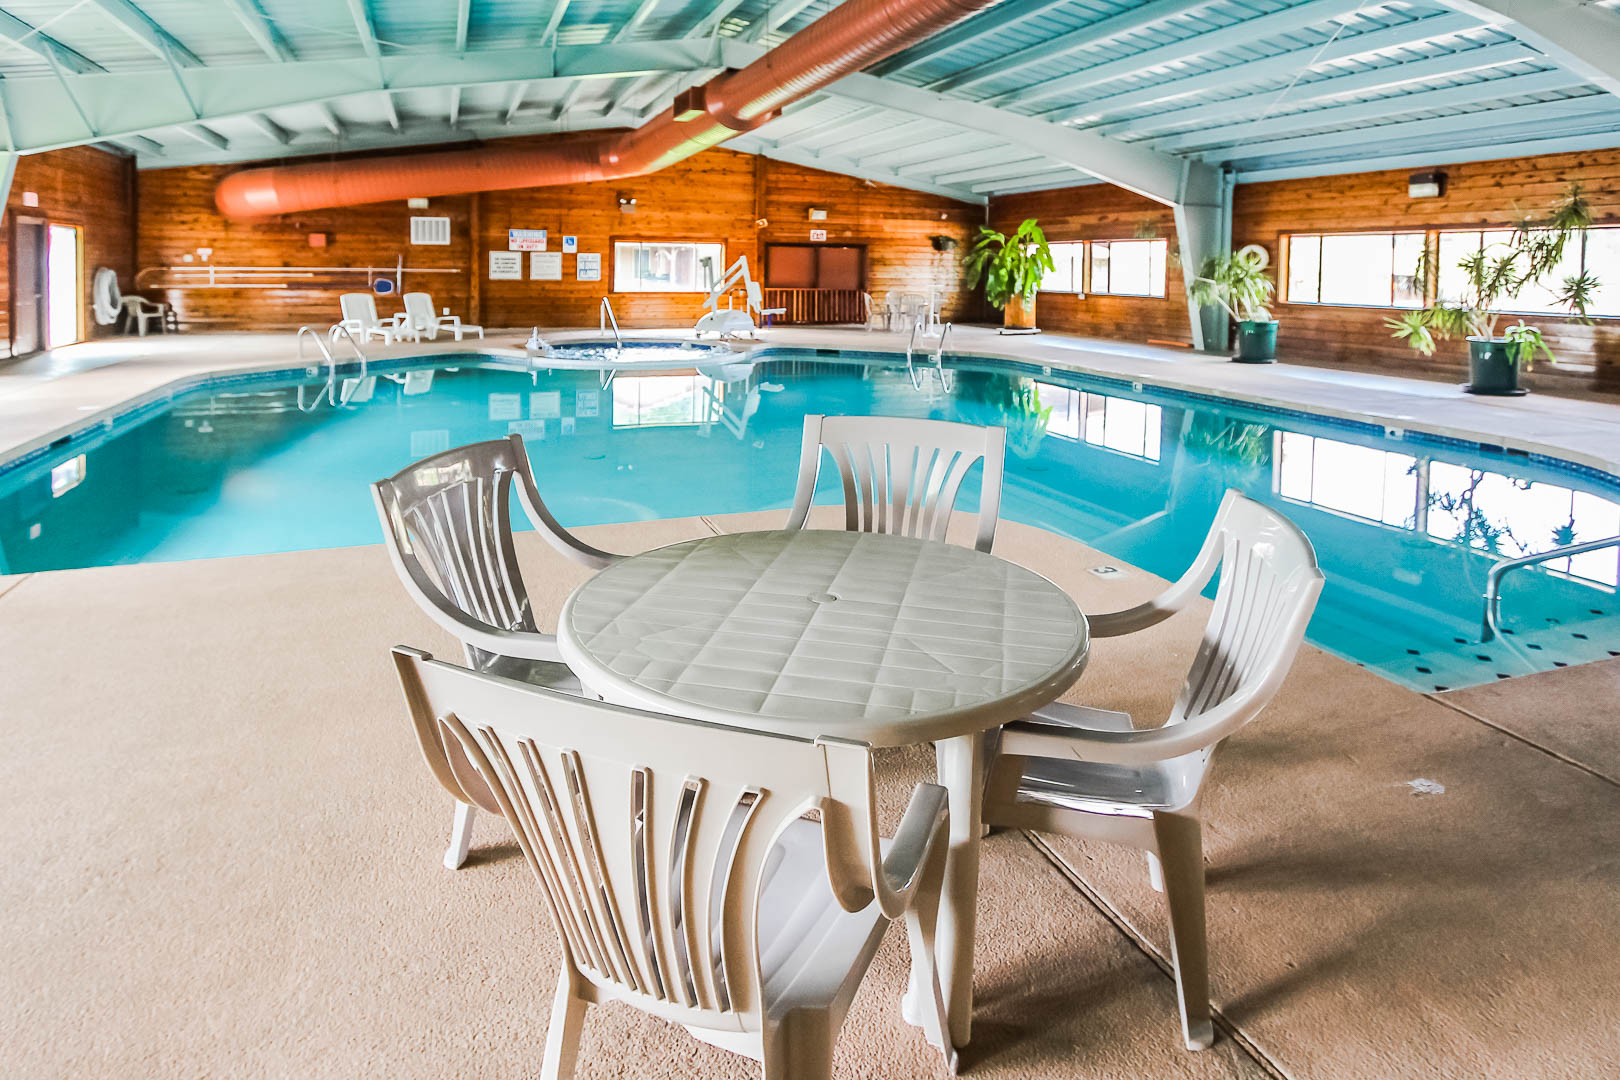 A spacious indoor swimming pool at VRI's Roundhouse Resort in Pinetop, Arizona.